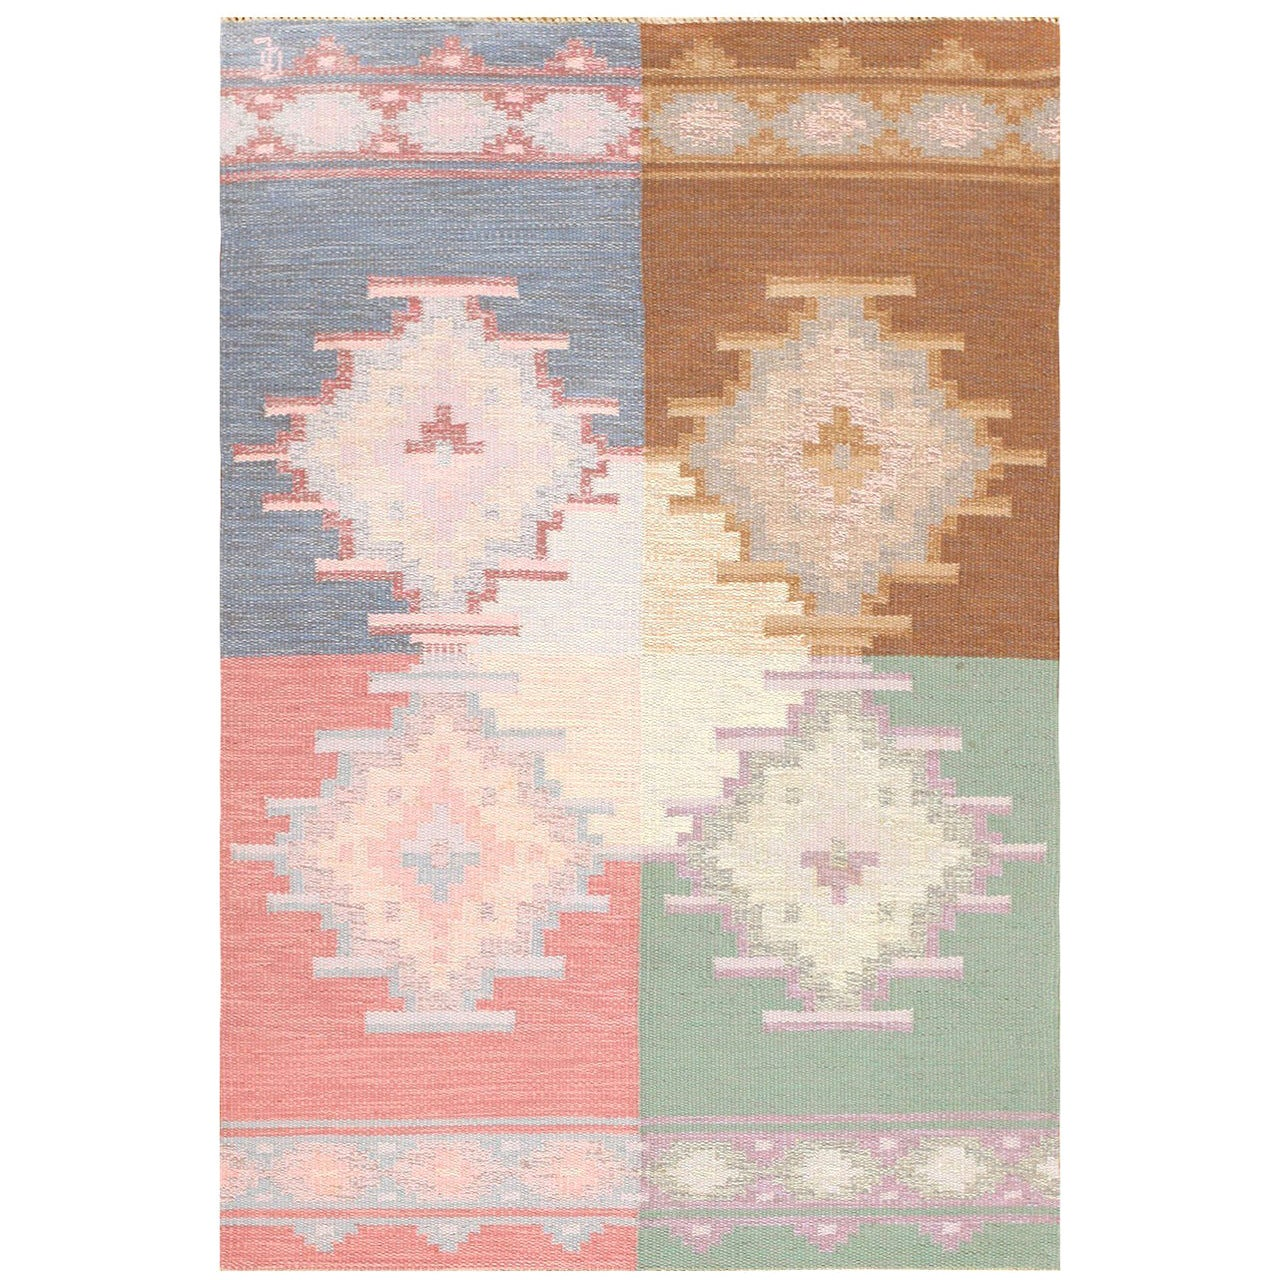 Vintage Swedish Flat-Woven Kilim. Size: 4 ft 5 in x 6 ft 8 in (1.35 m x 2.03 m)